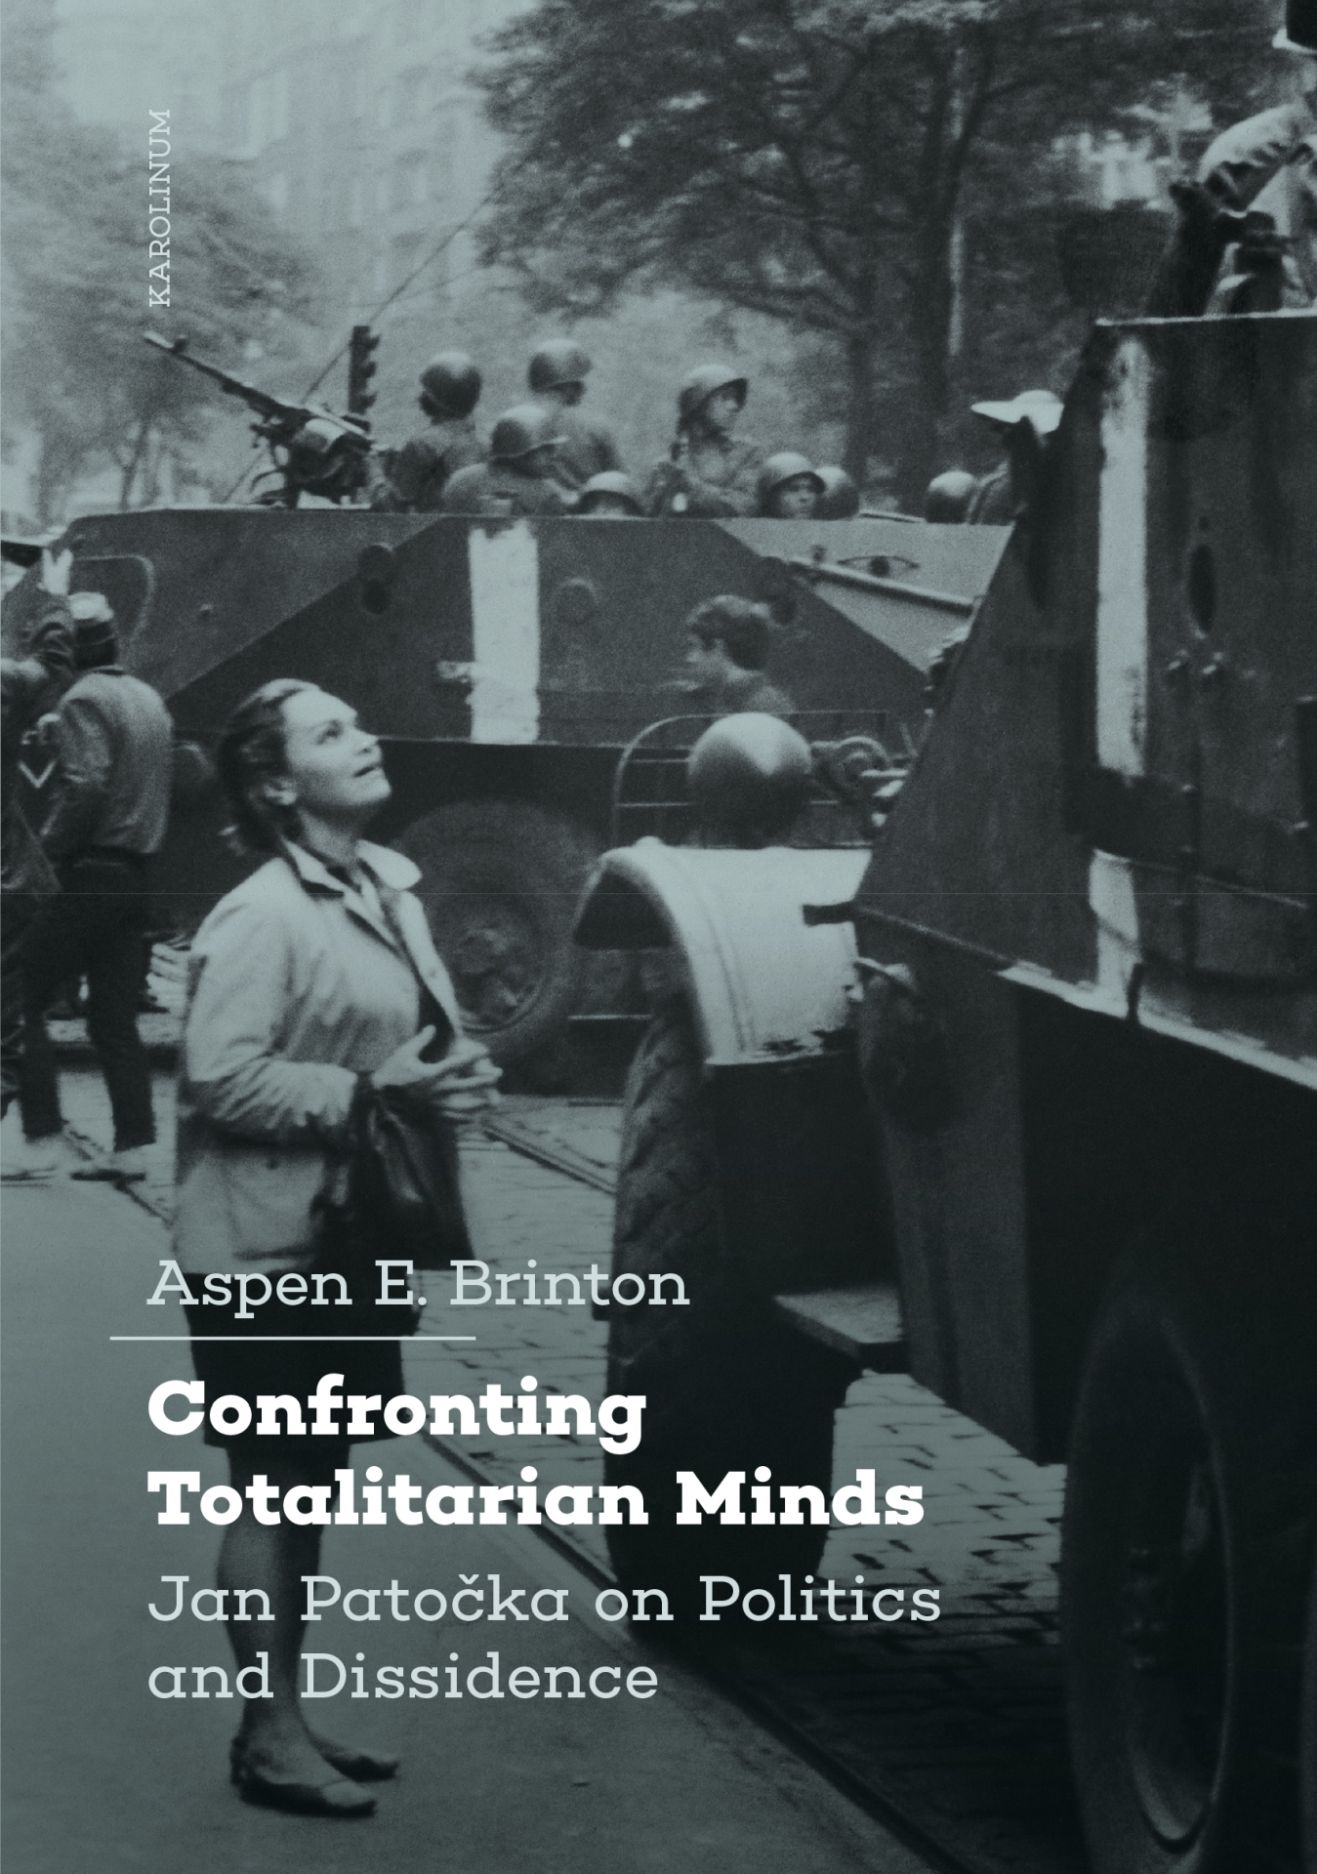 The Confronting Totalitarian Minds: Jan Patocka on Politics and Dissidence Book Cover